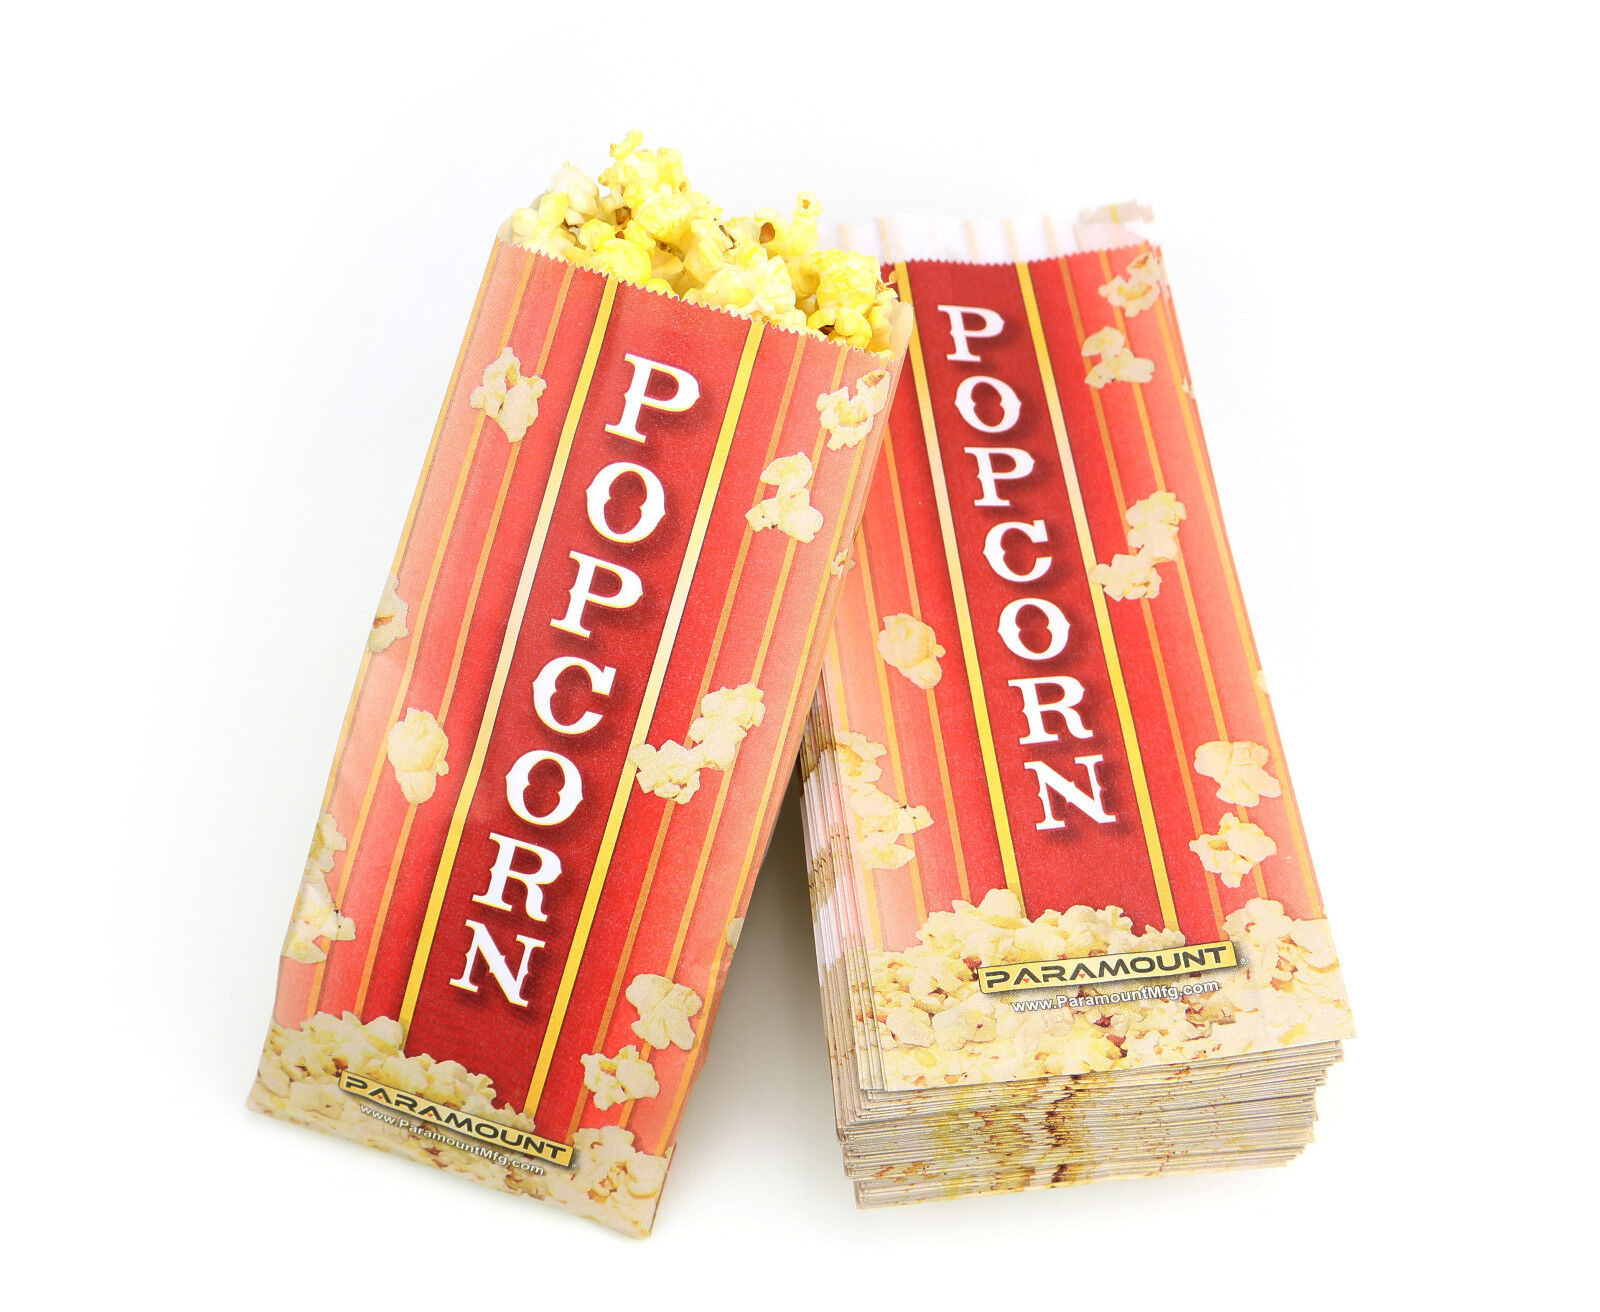 500 Popcorn Serving Bags, Pinch Bottom Paper Bag Style